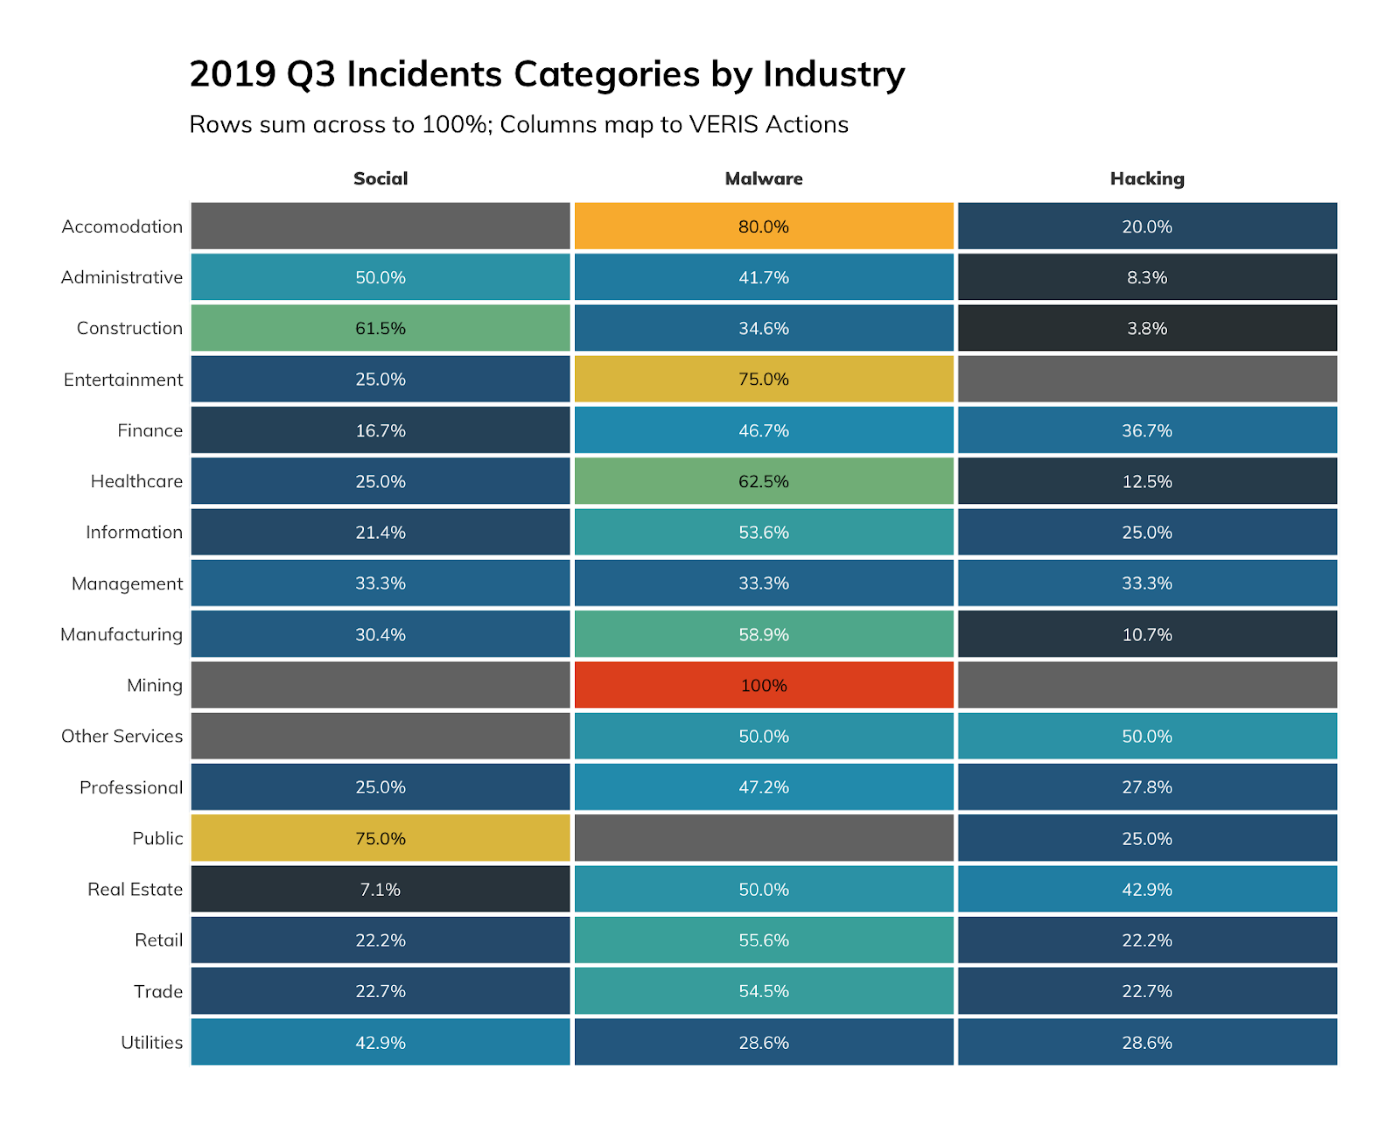 Figure 1: 2019 Q3 Incidents by Industry